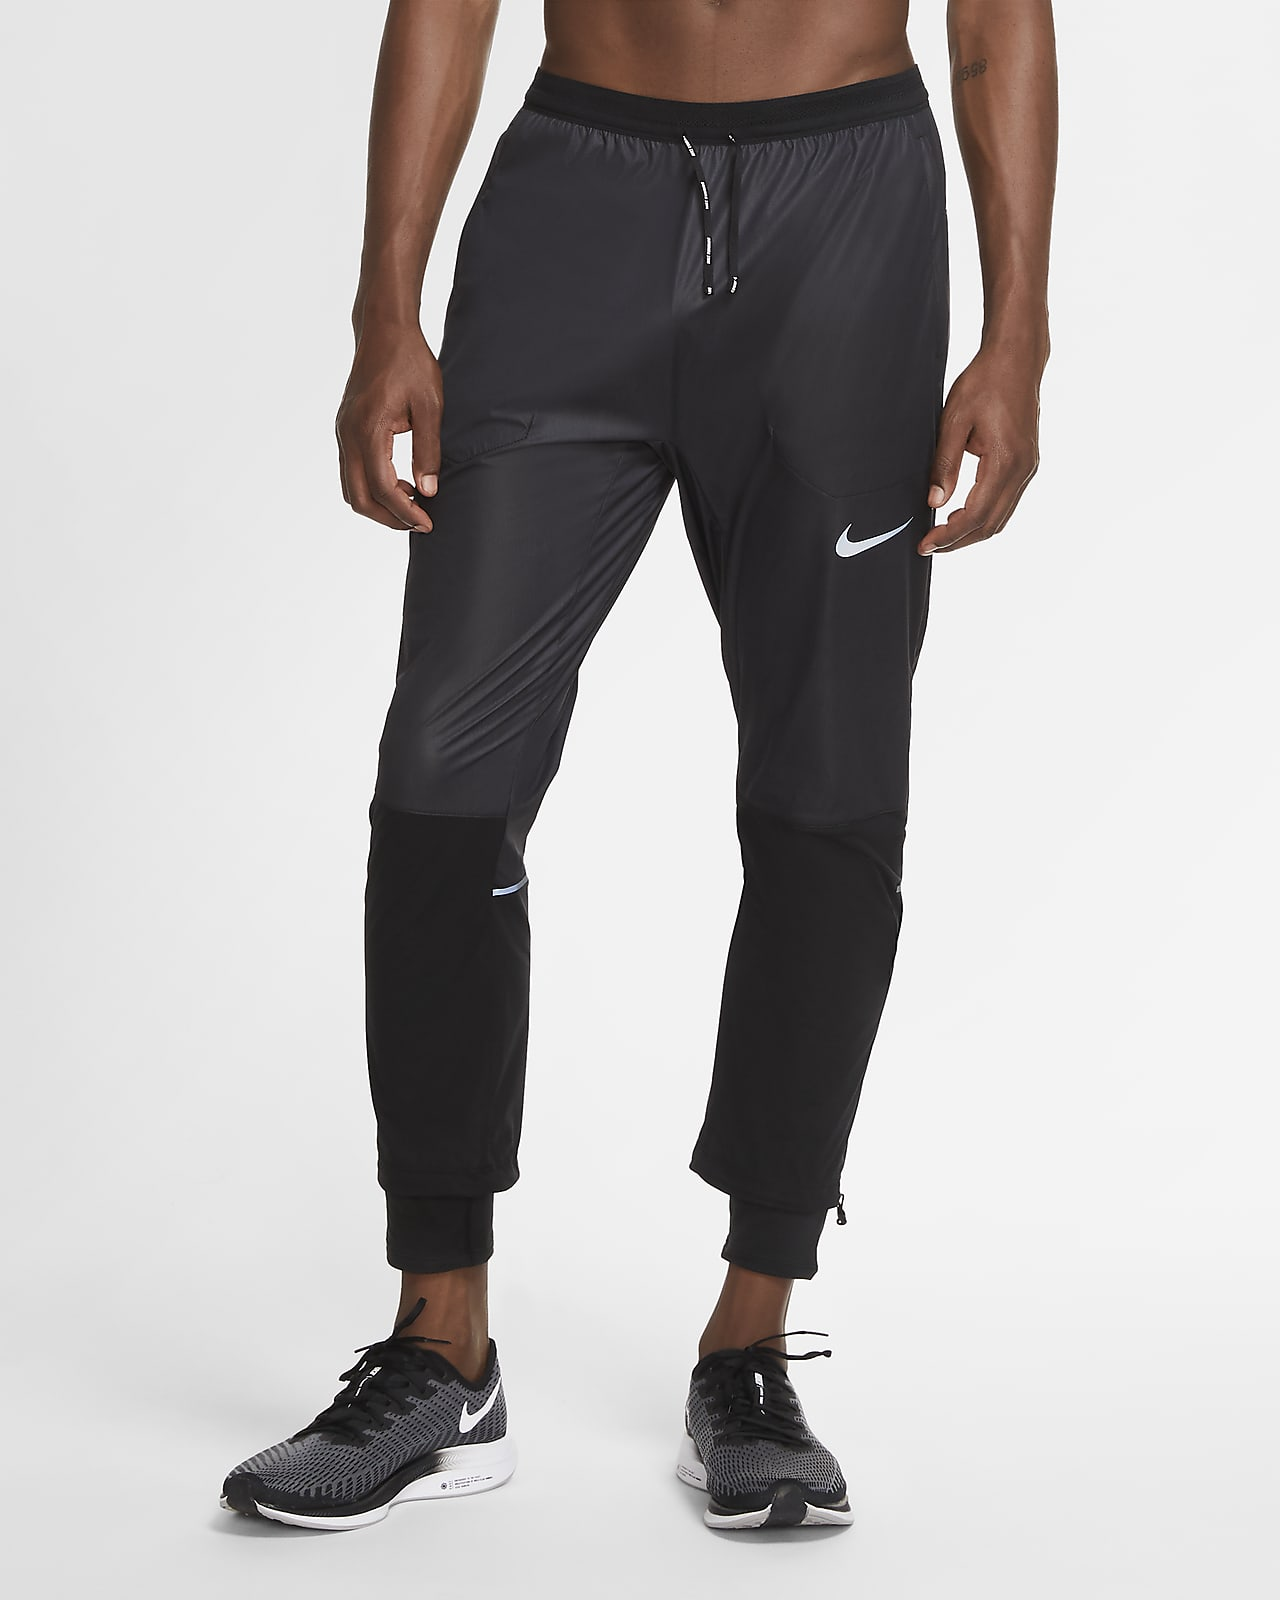 Pantalon de running Nike Swift Shield pour Homme